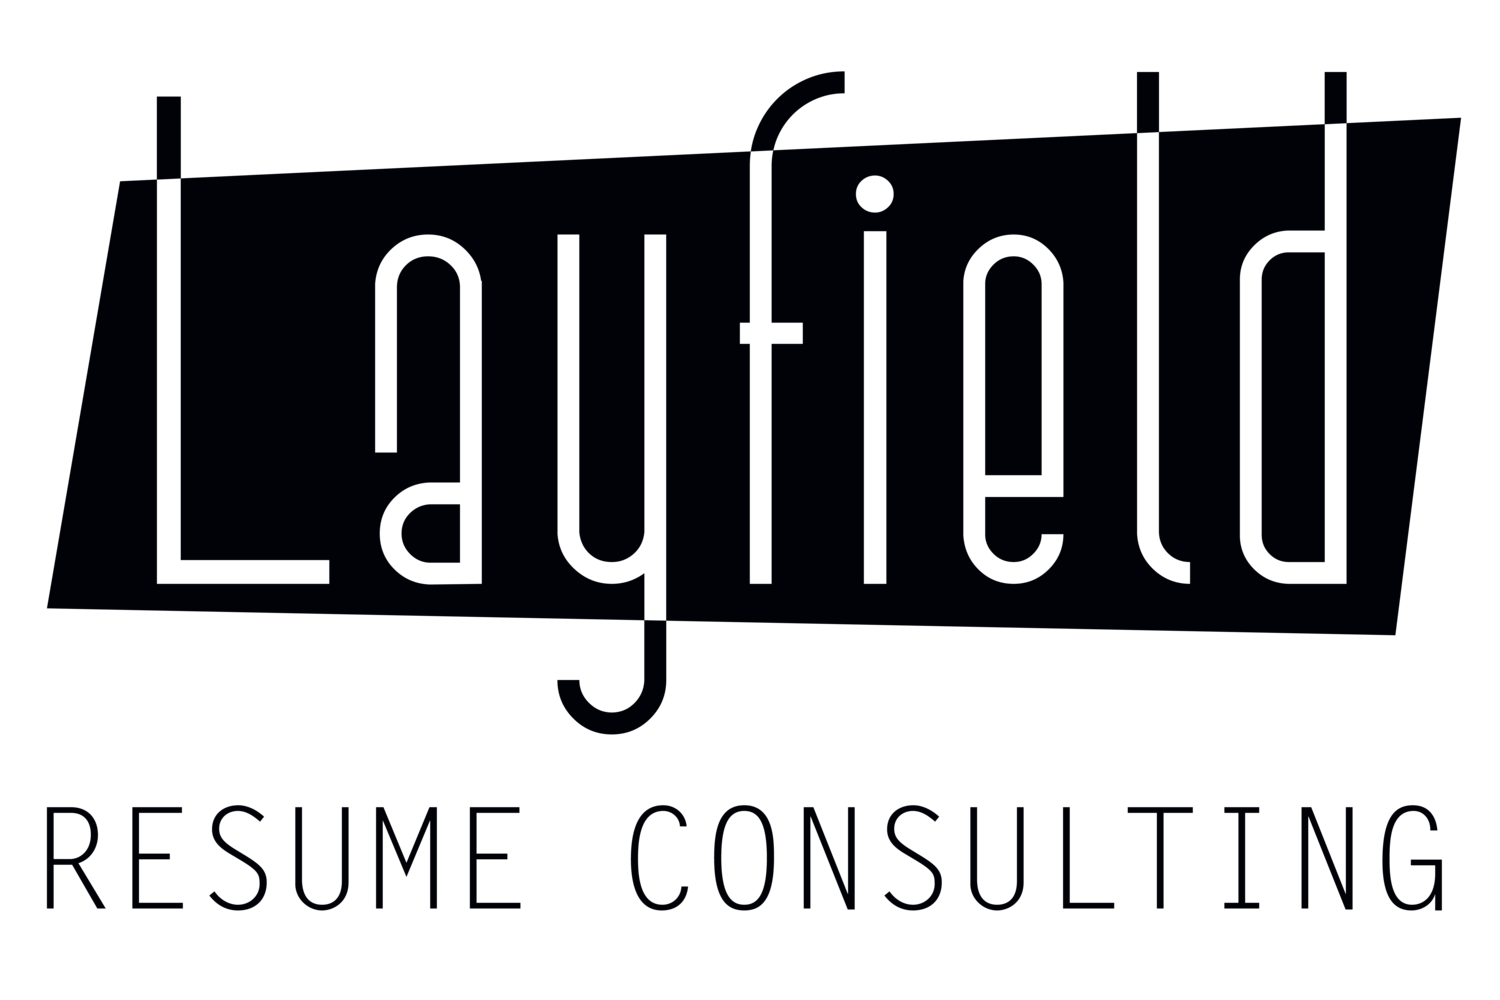 layfield resume consulting - Resume Review